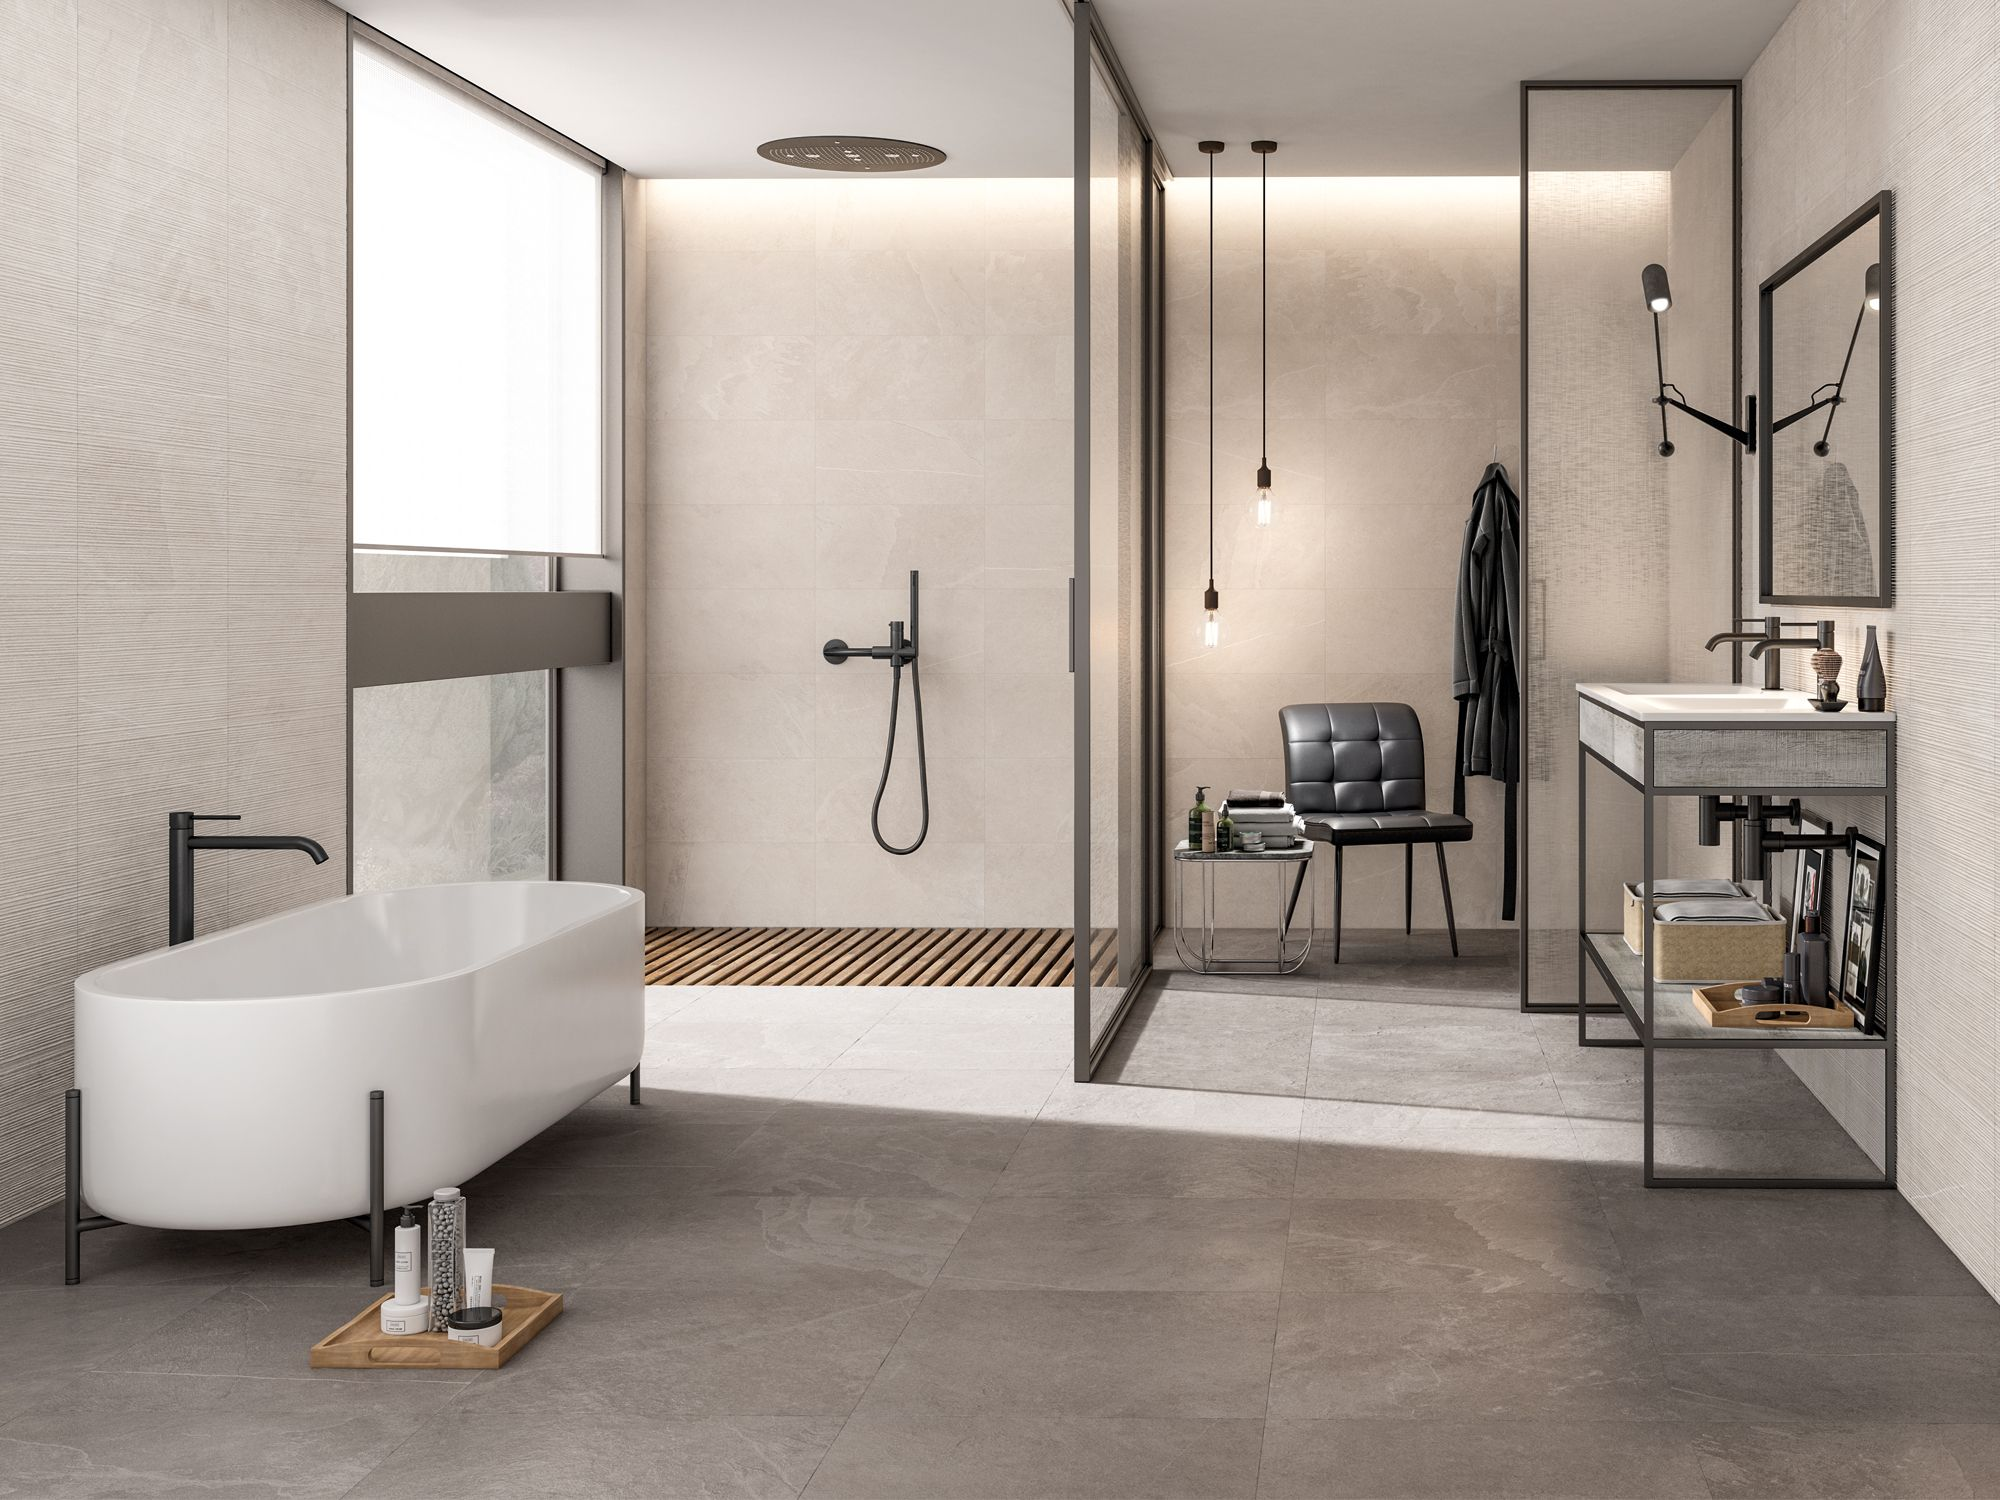 Cifre Overland sand and greige glazed porcelain tiles in a matte finish, from Hafary